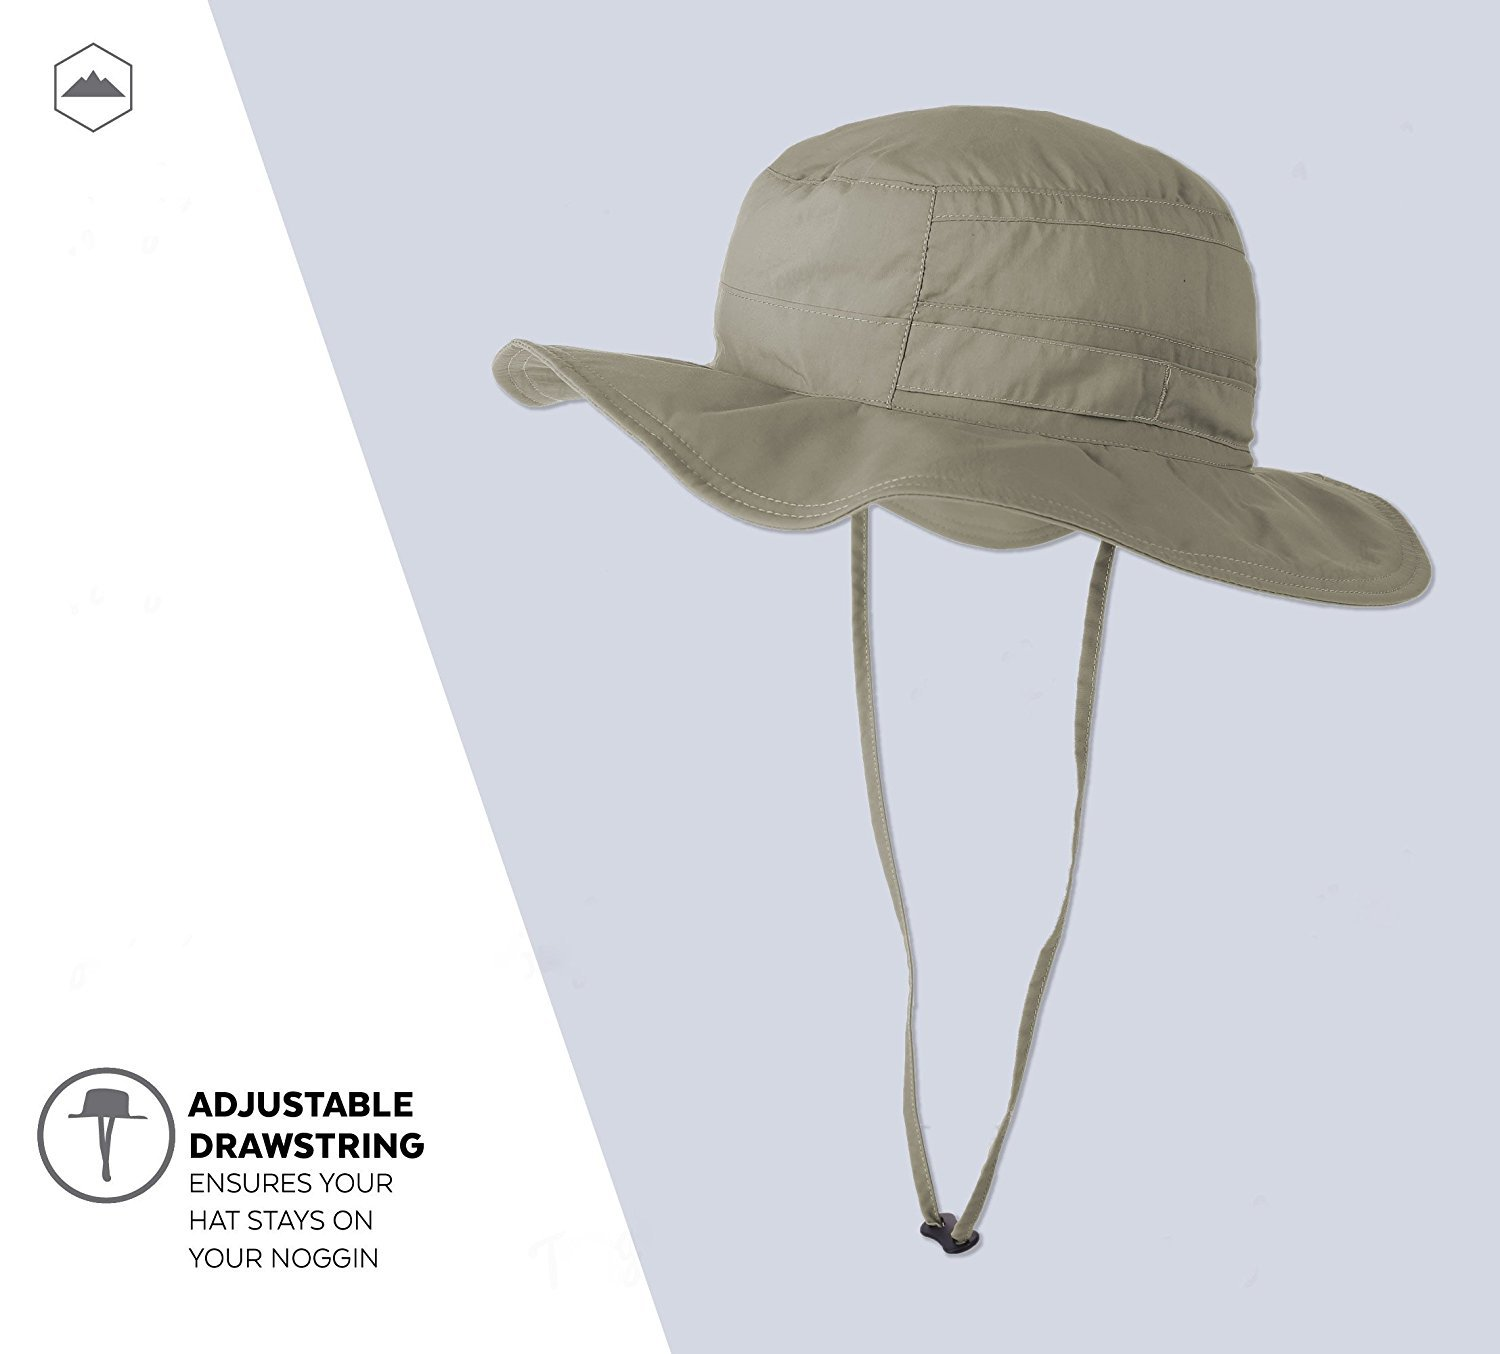 17bdf625eed44 Boonie Safari Sun Hat for Men   Women - UPF 50 Sun Protection - Wide Brim  Summer Hat. Waterproof for Fishing